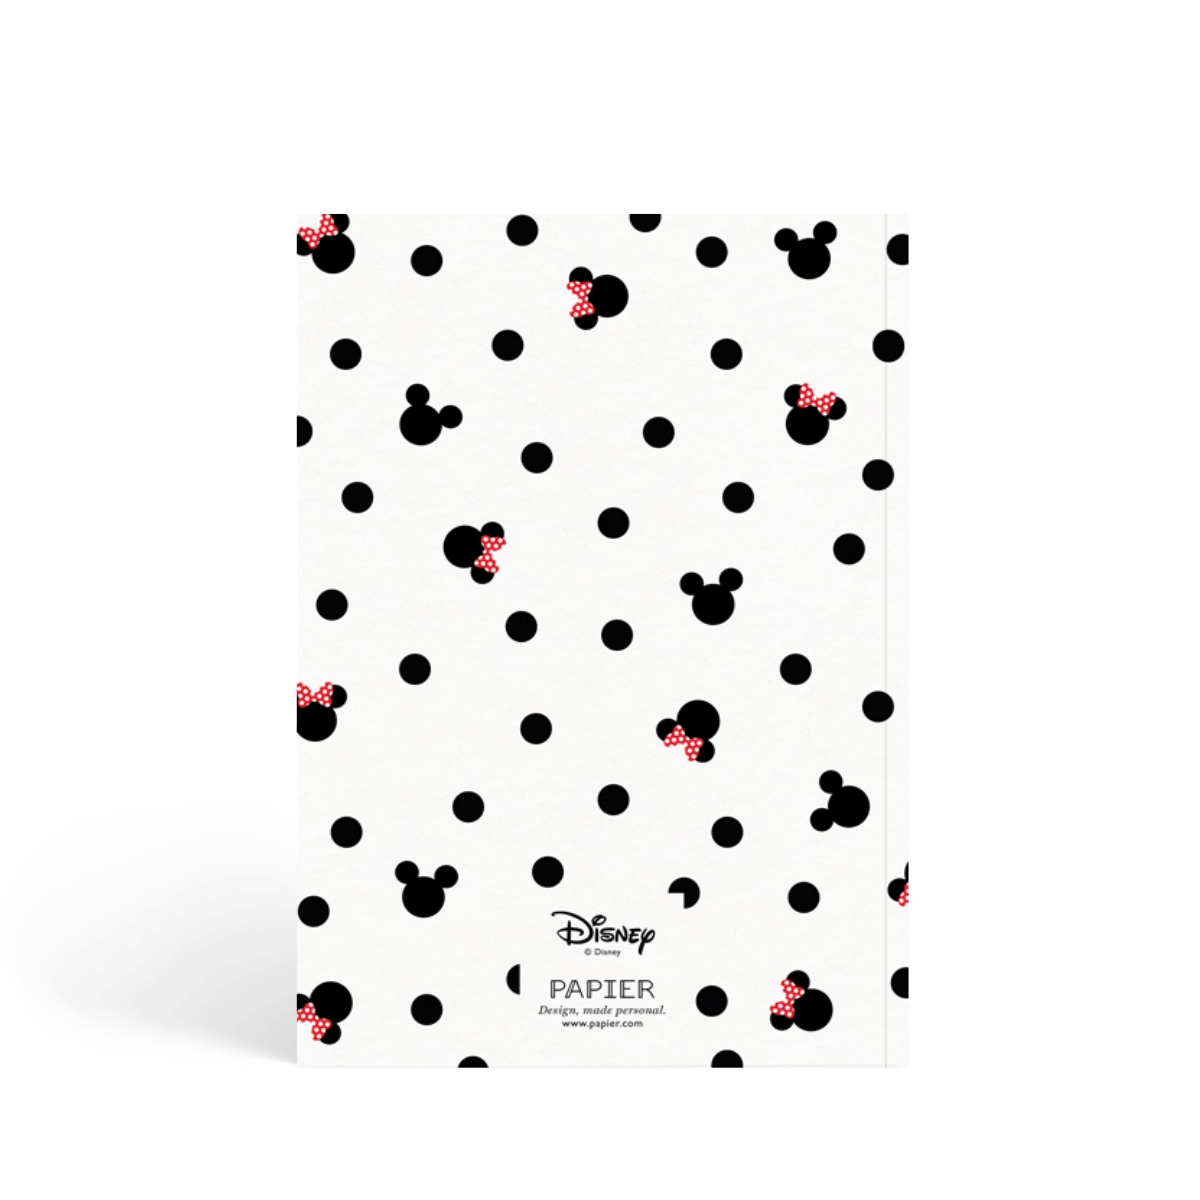 Https%3a%2f%2fwww.papier.com%2fproduct image%2f55824%2f5%2fmickey minnie mouse 13406 rueckseite 1542299842.png?ixlib=rb 1.1